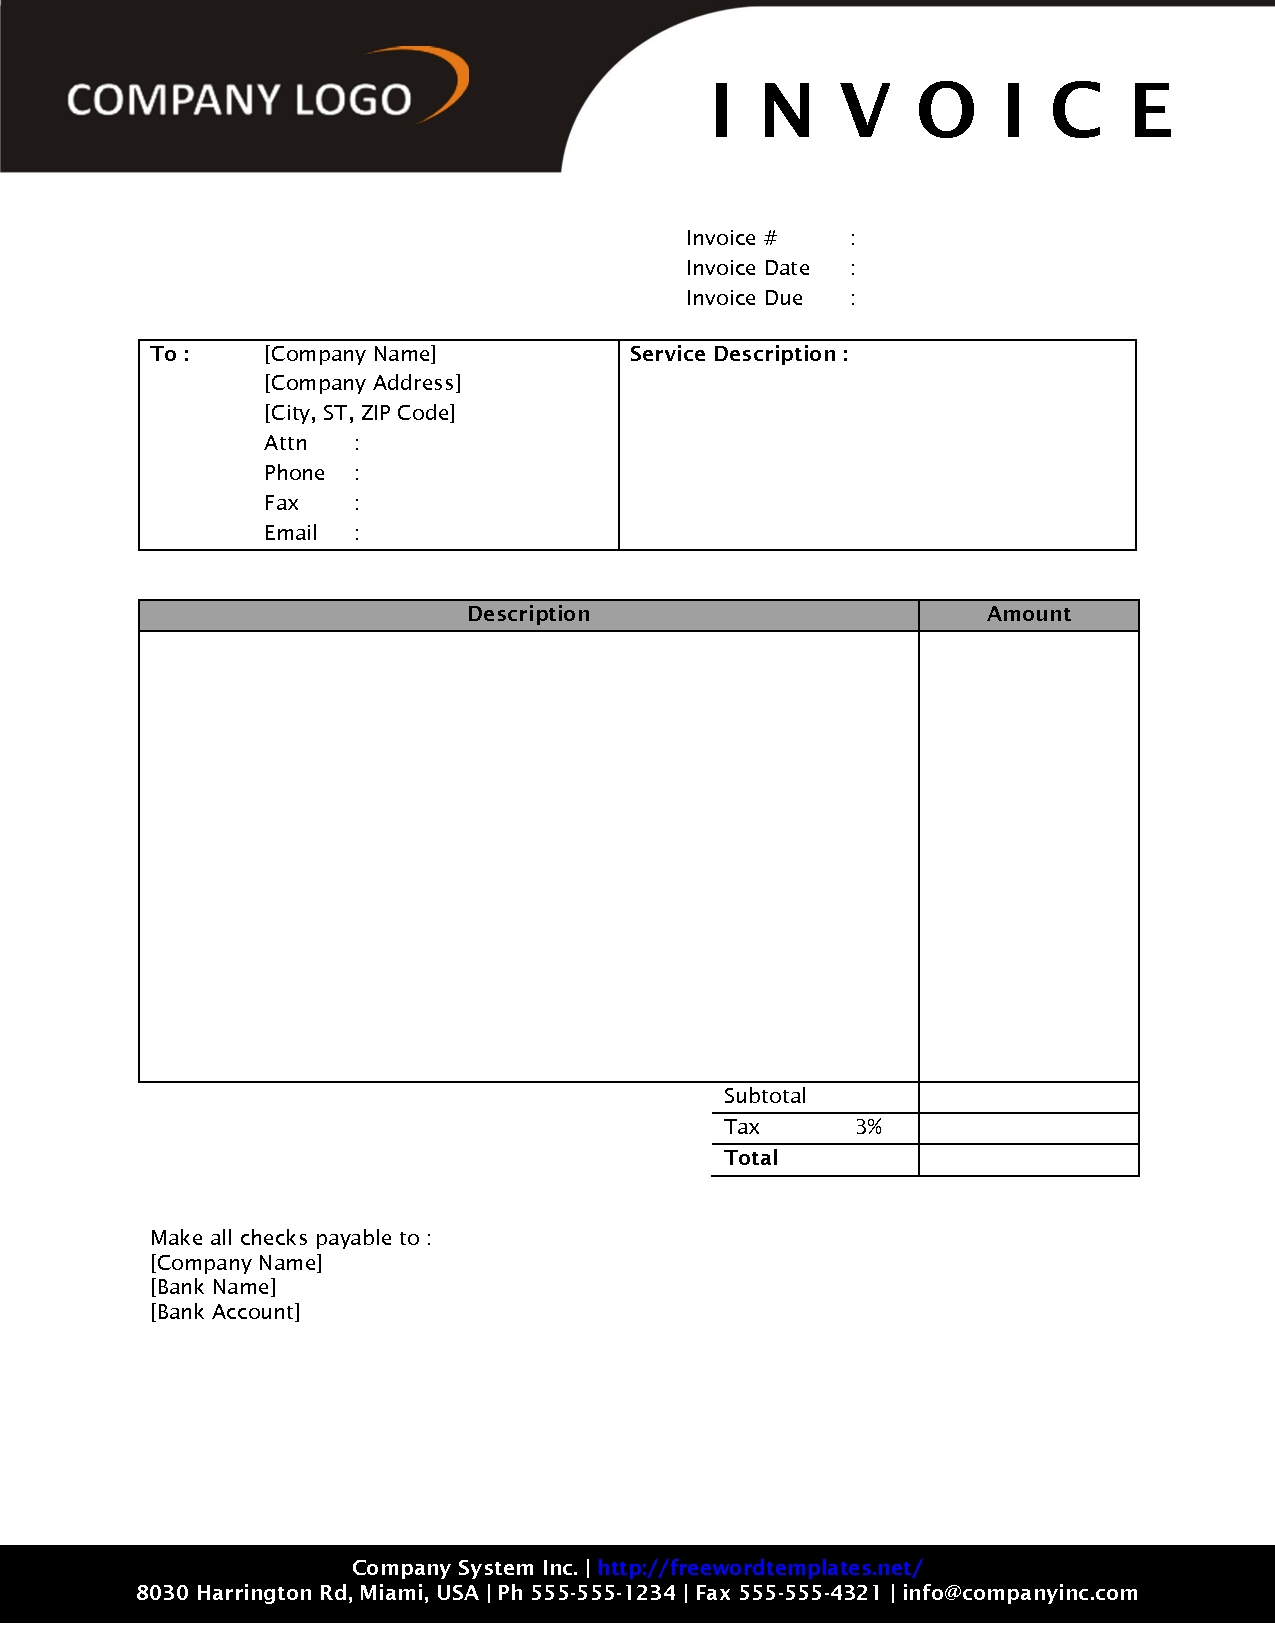 download free invoice download free invoice template free business template 1275 X 1650